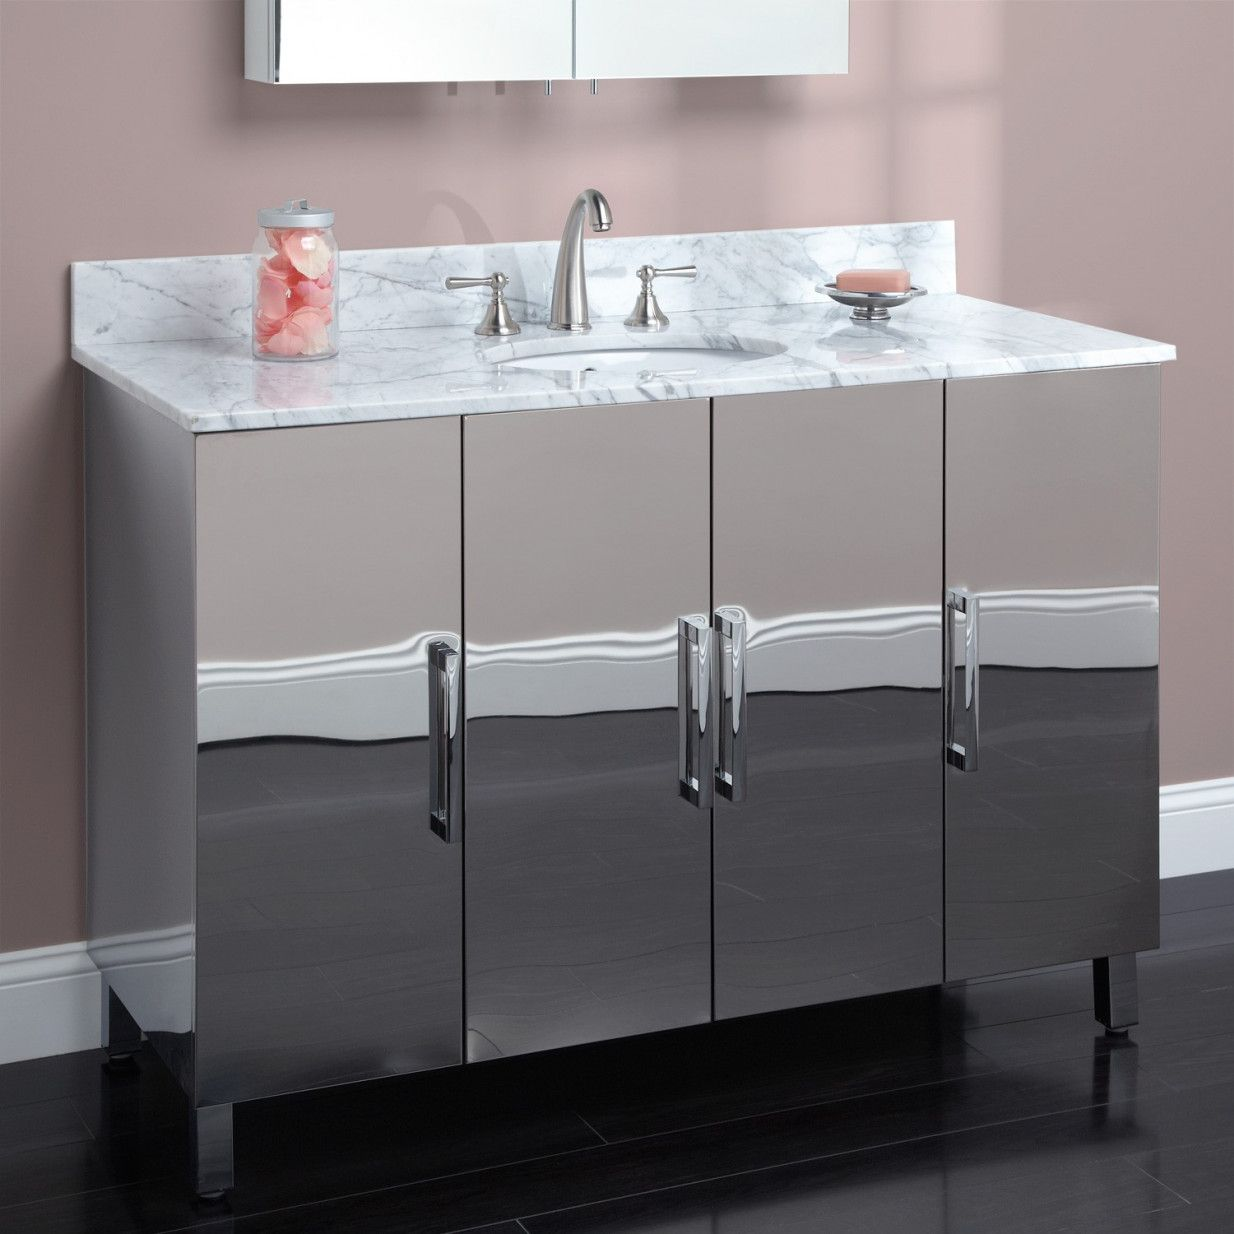 70+ Stainless Bathroom Cabinet - What is the Best Interior Paint ...